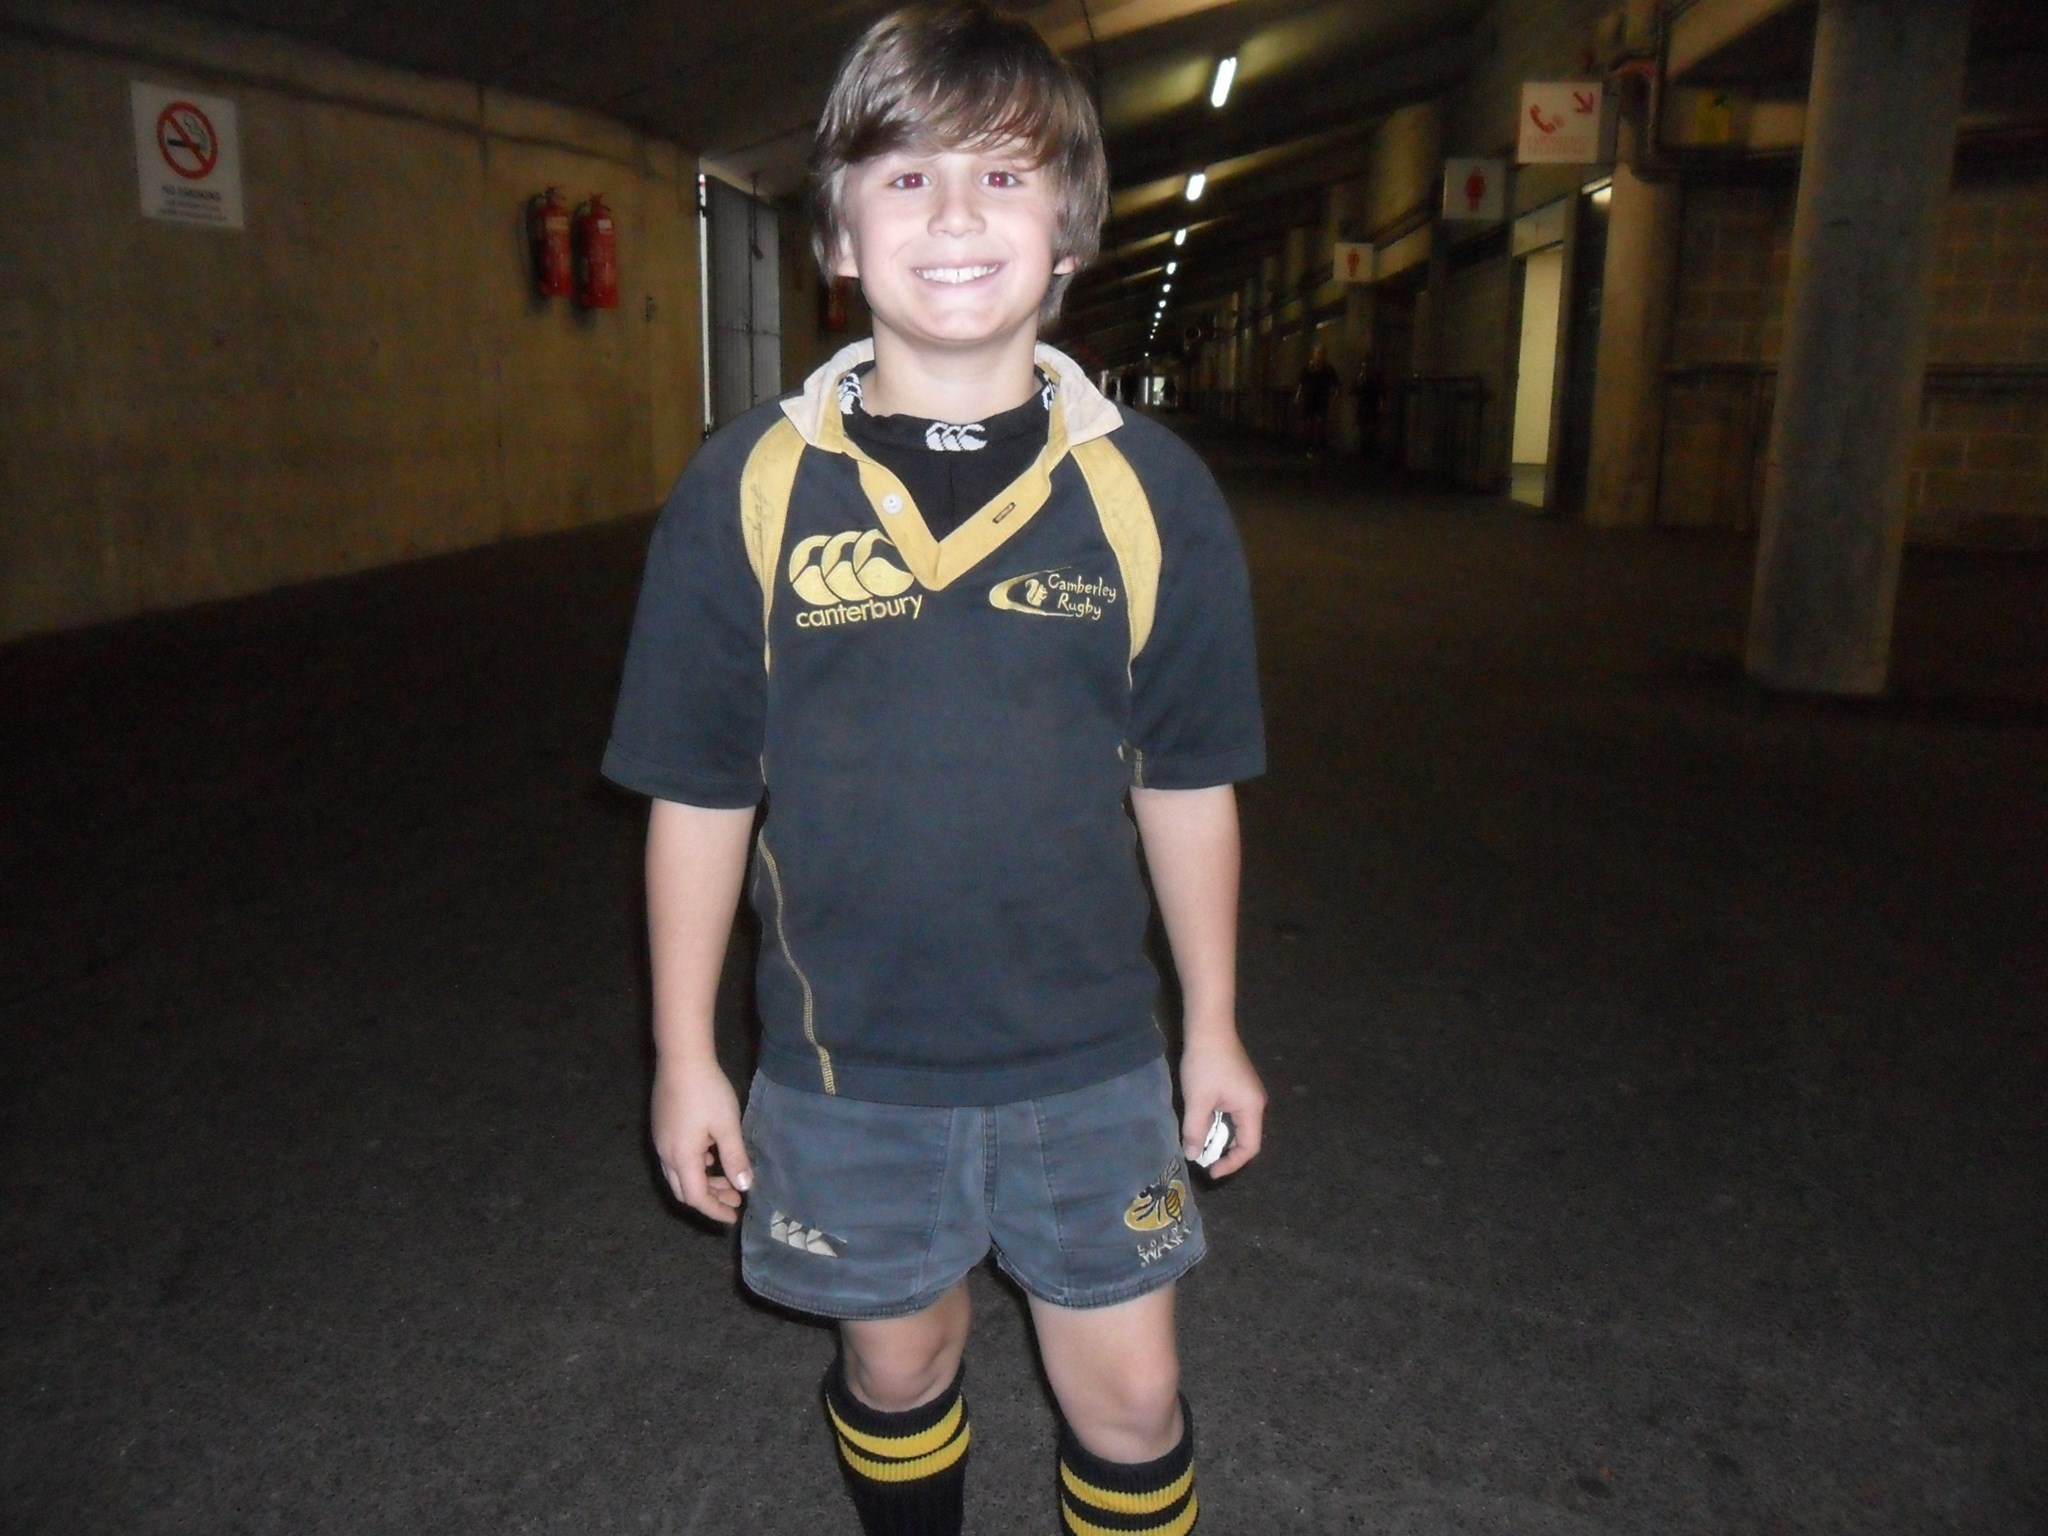 Josh after playing at Twickenham